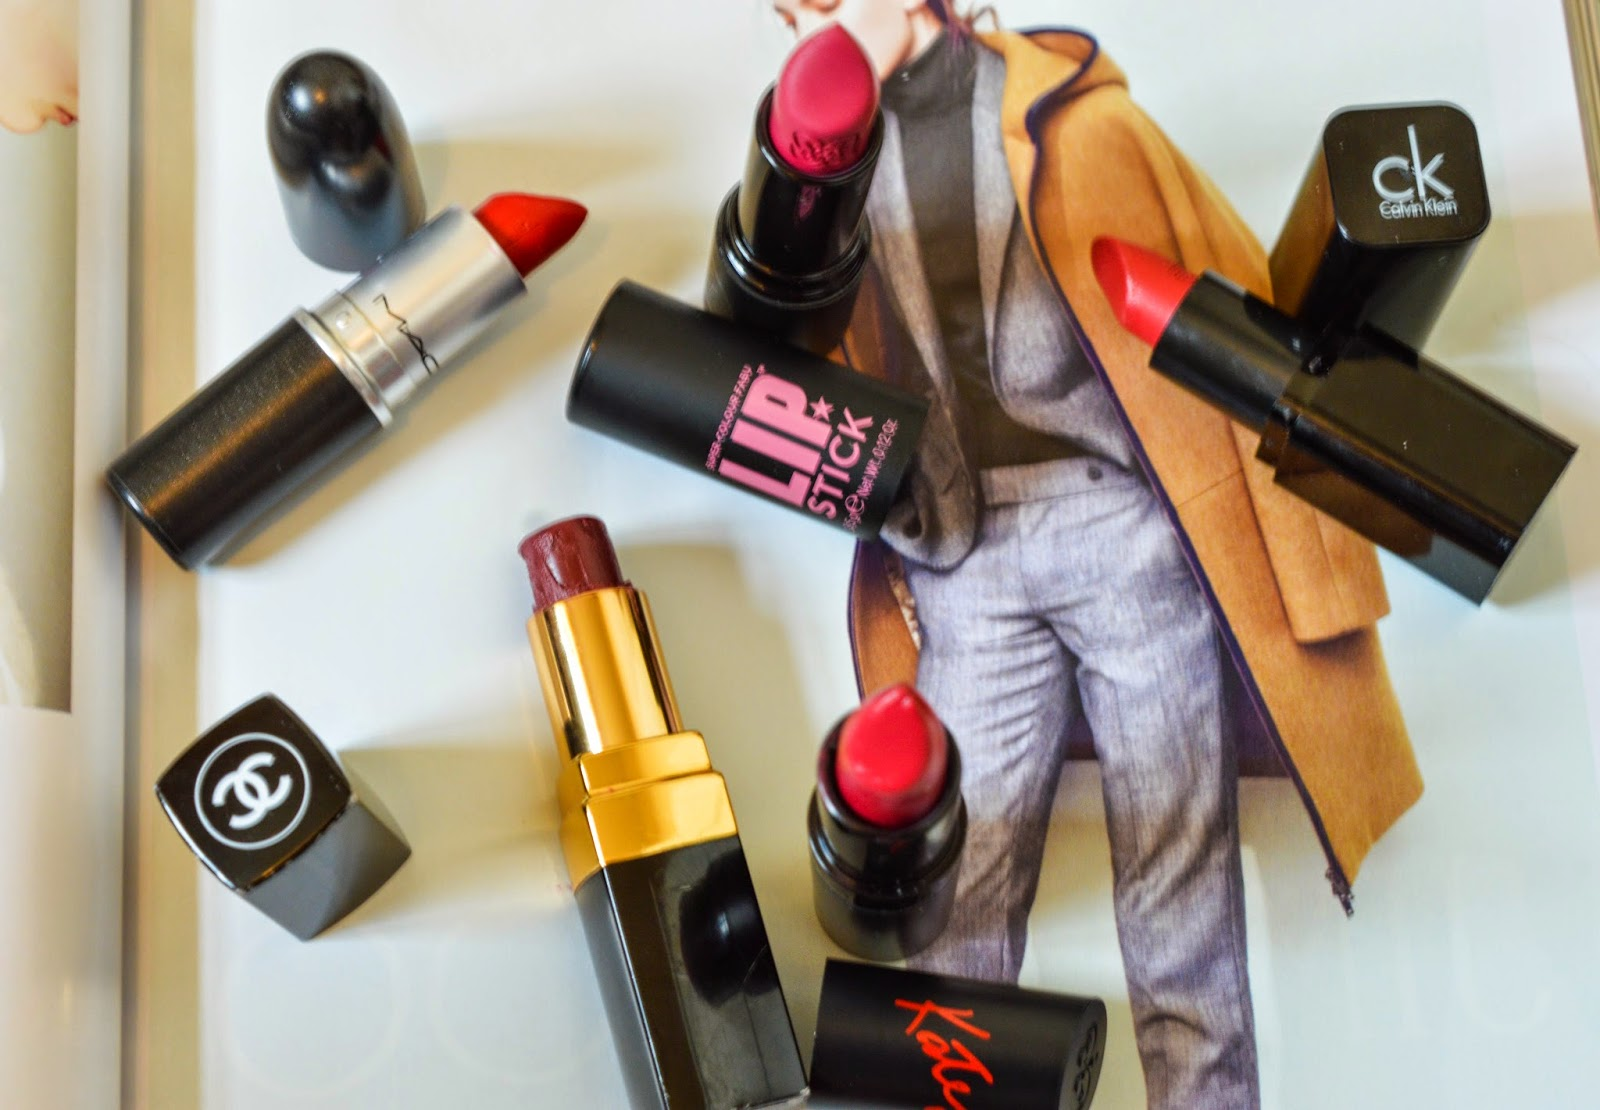 Red & Berry lipsticks including Channel, Mac, Soap & Glory, Rimmel Kate Moss and Calvin Klien